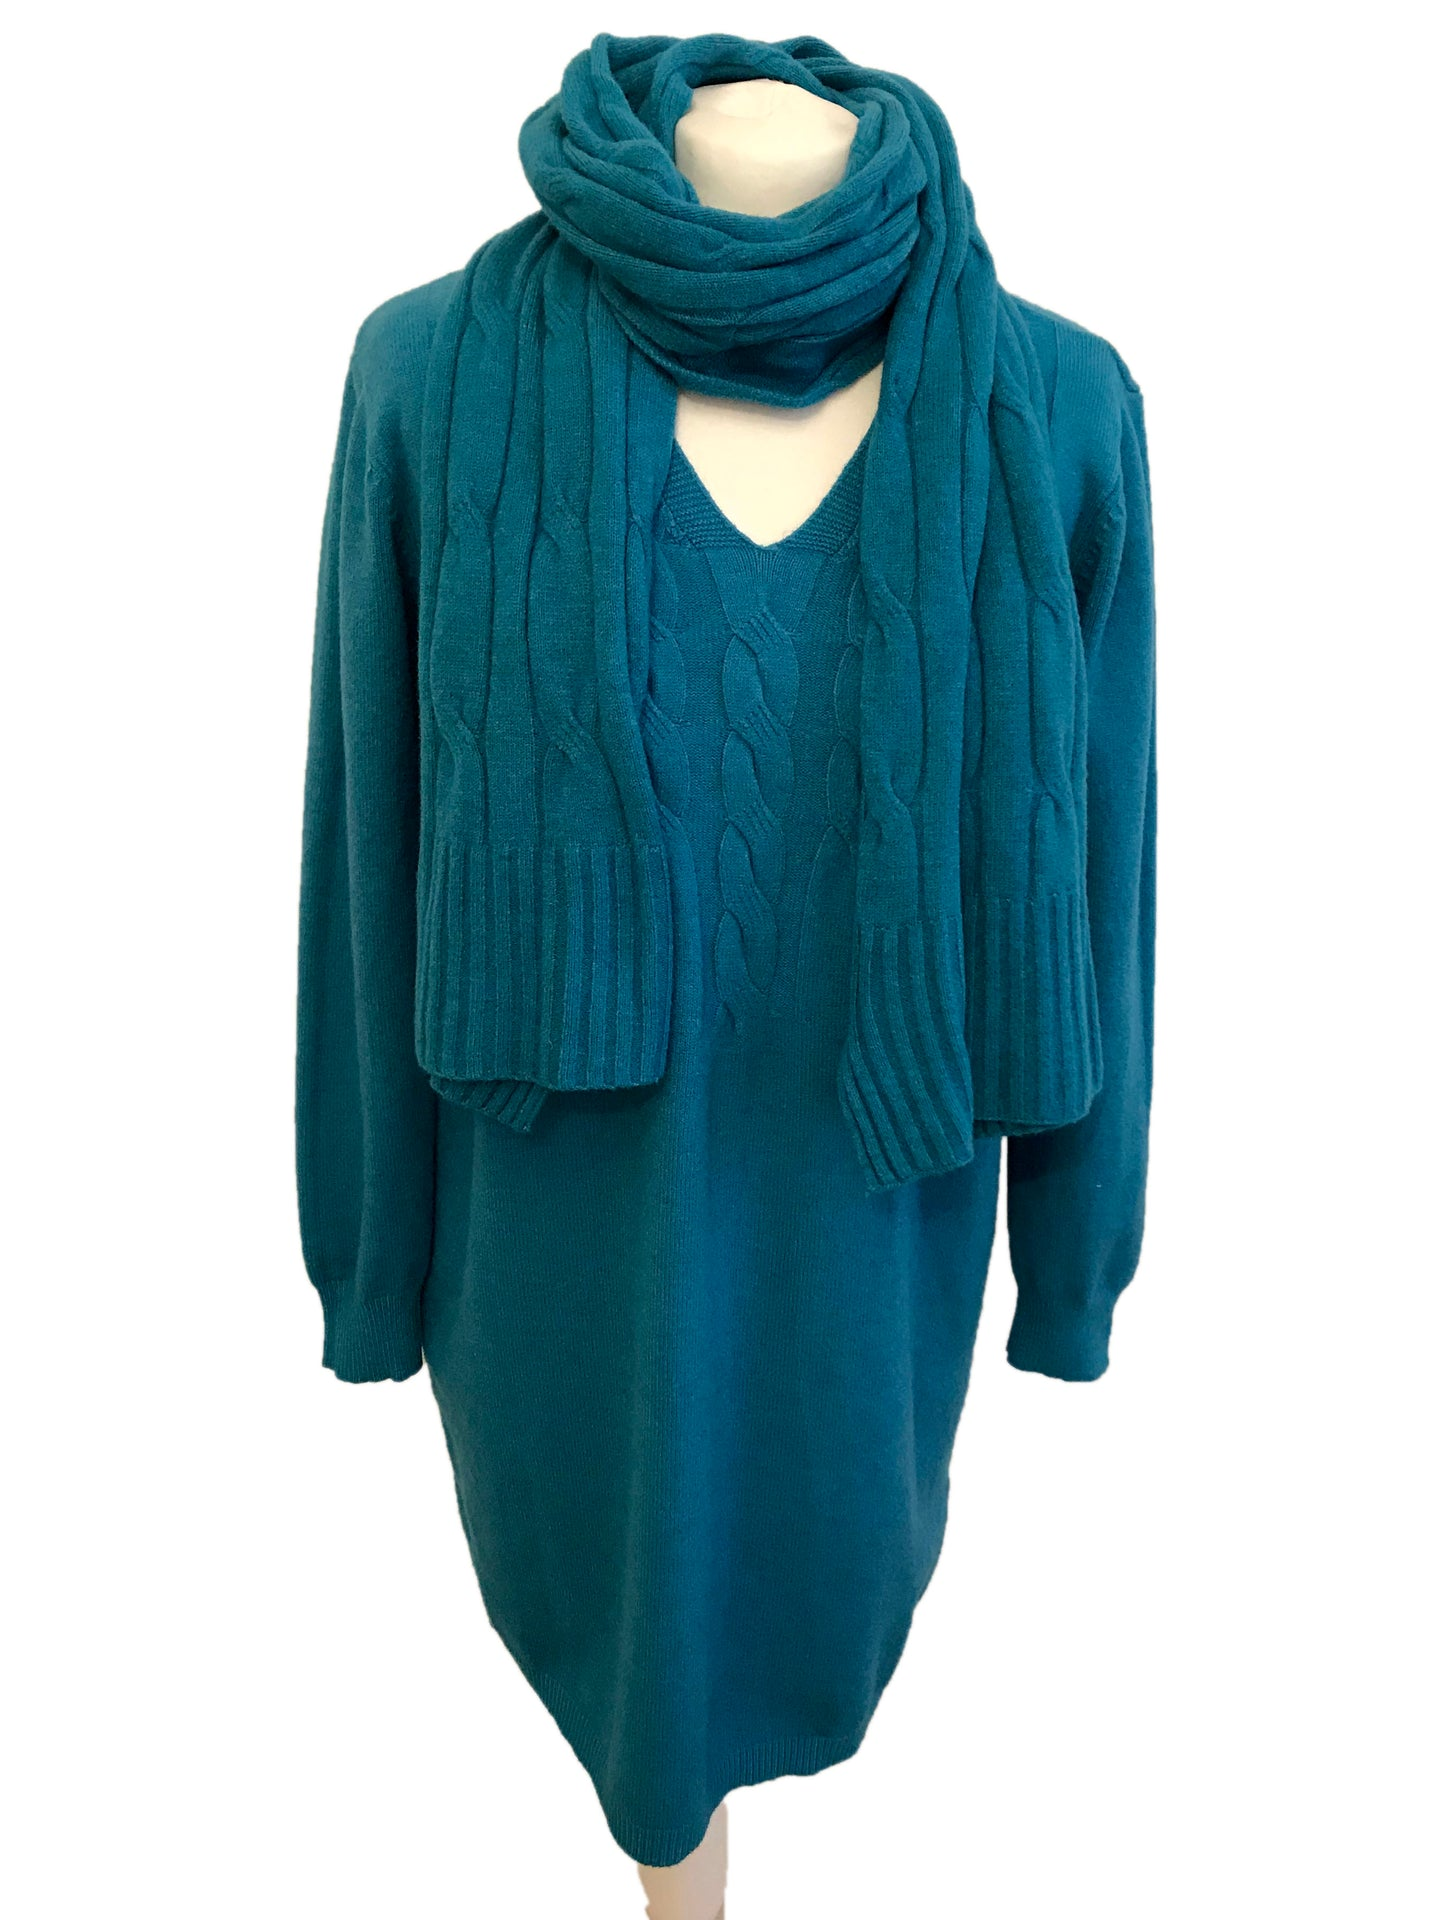 Cable Knit Jumper Dress Teal Blue